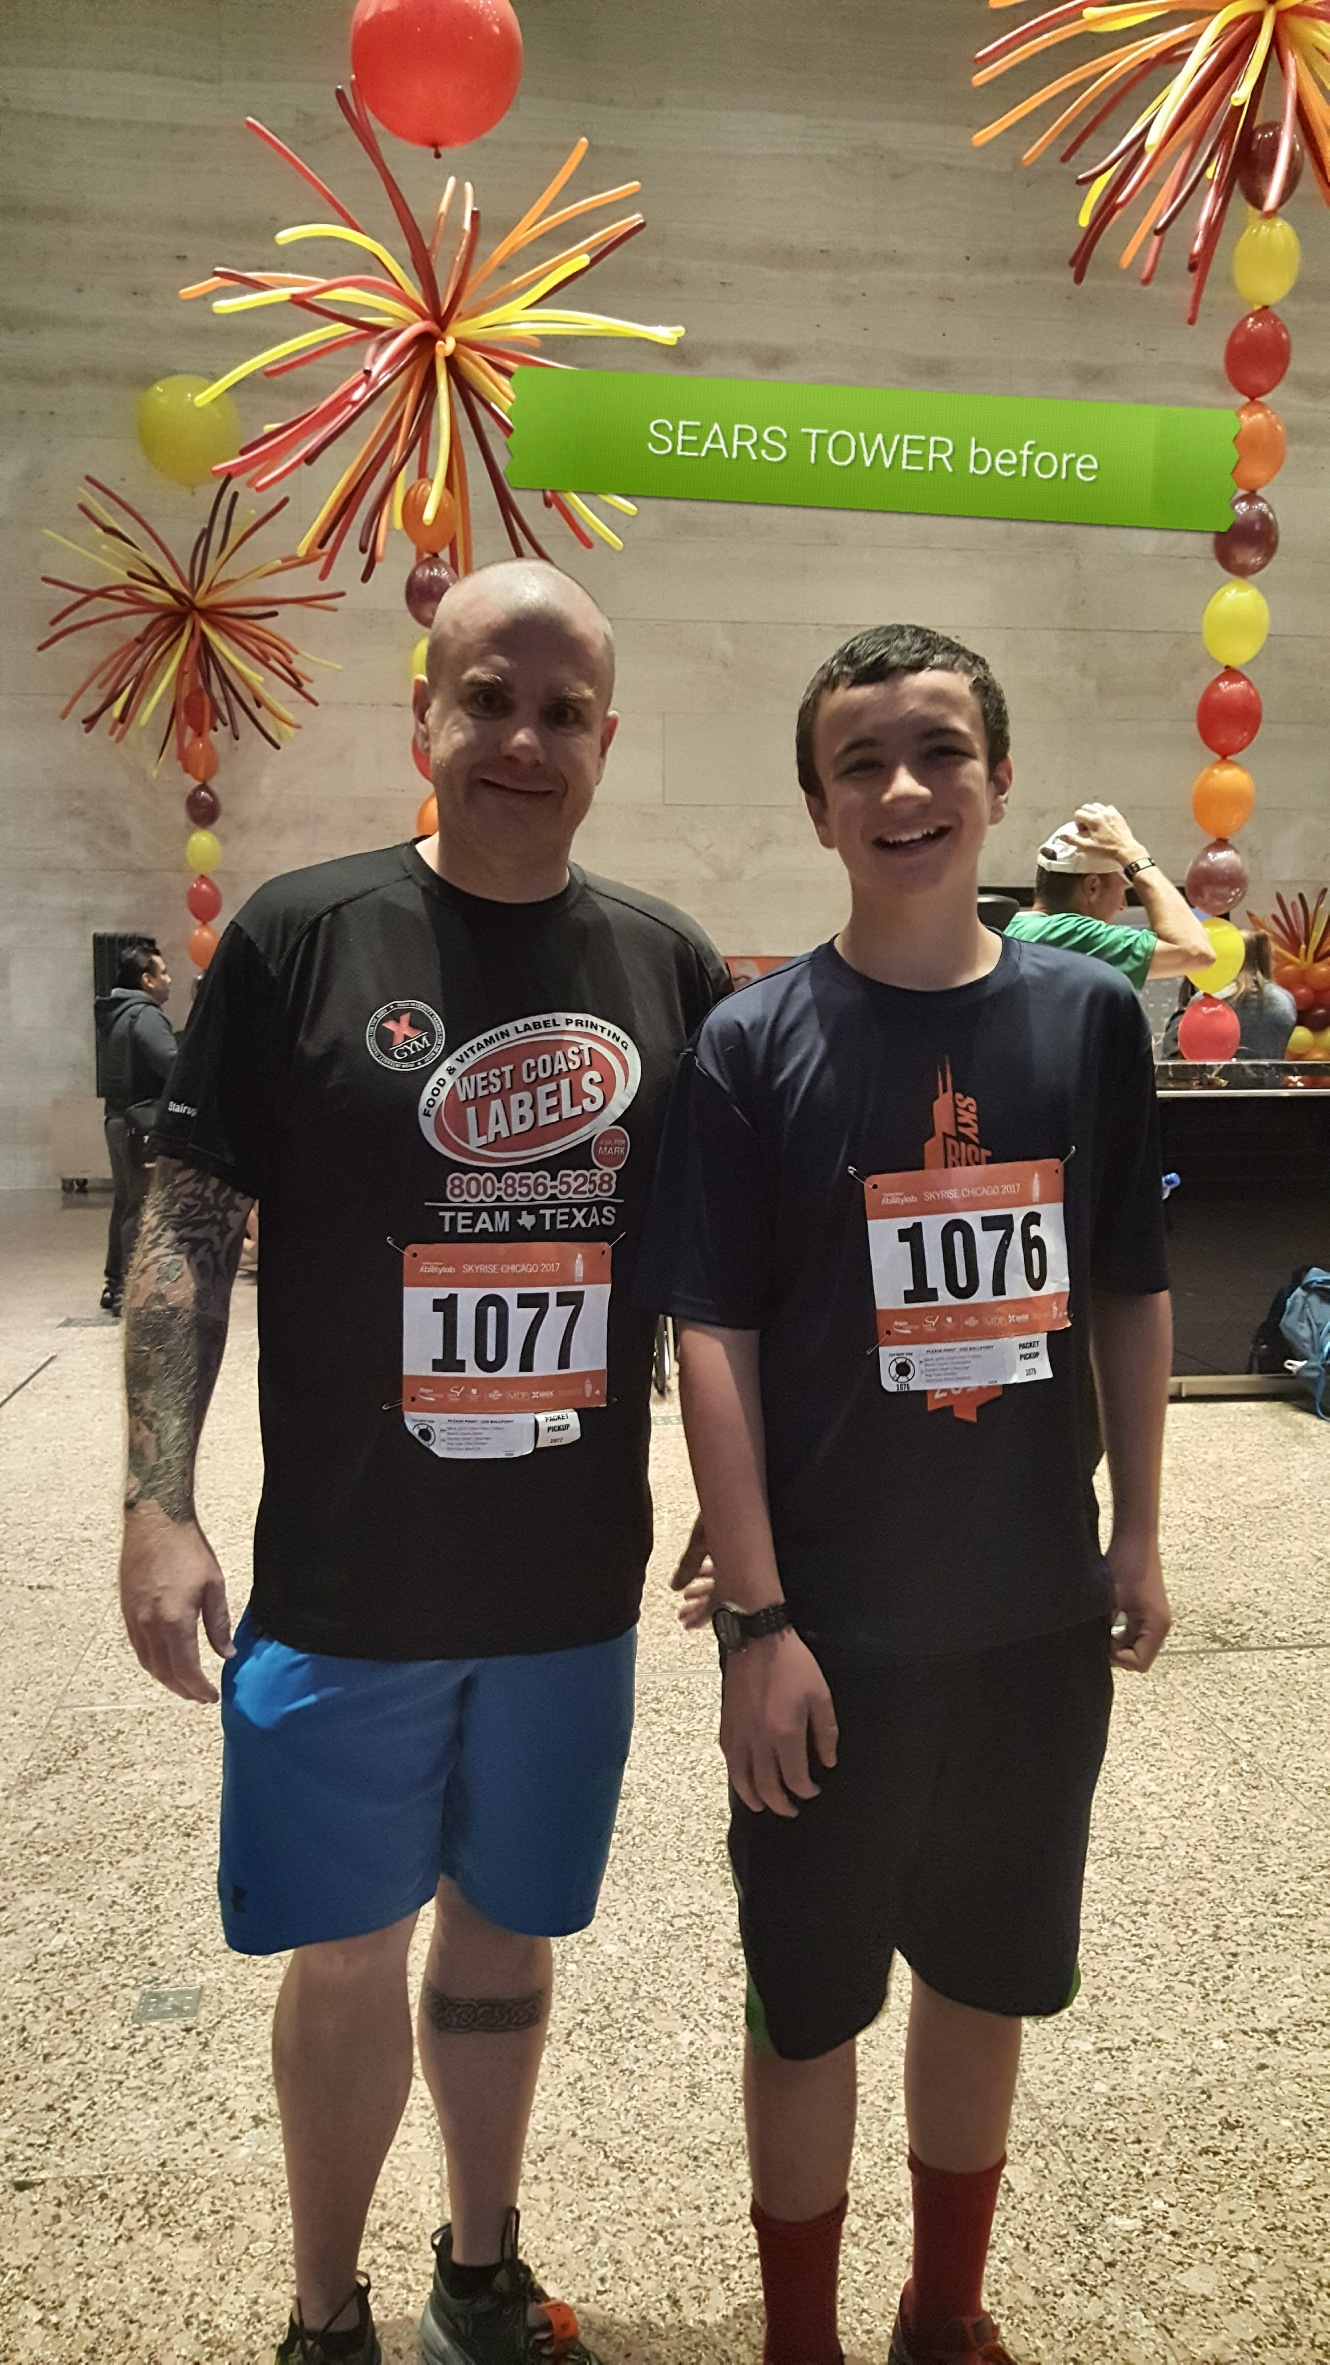 image of steve and lil man before the climb at Sears Tower 2017